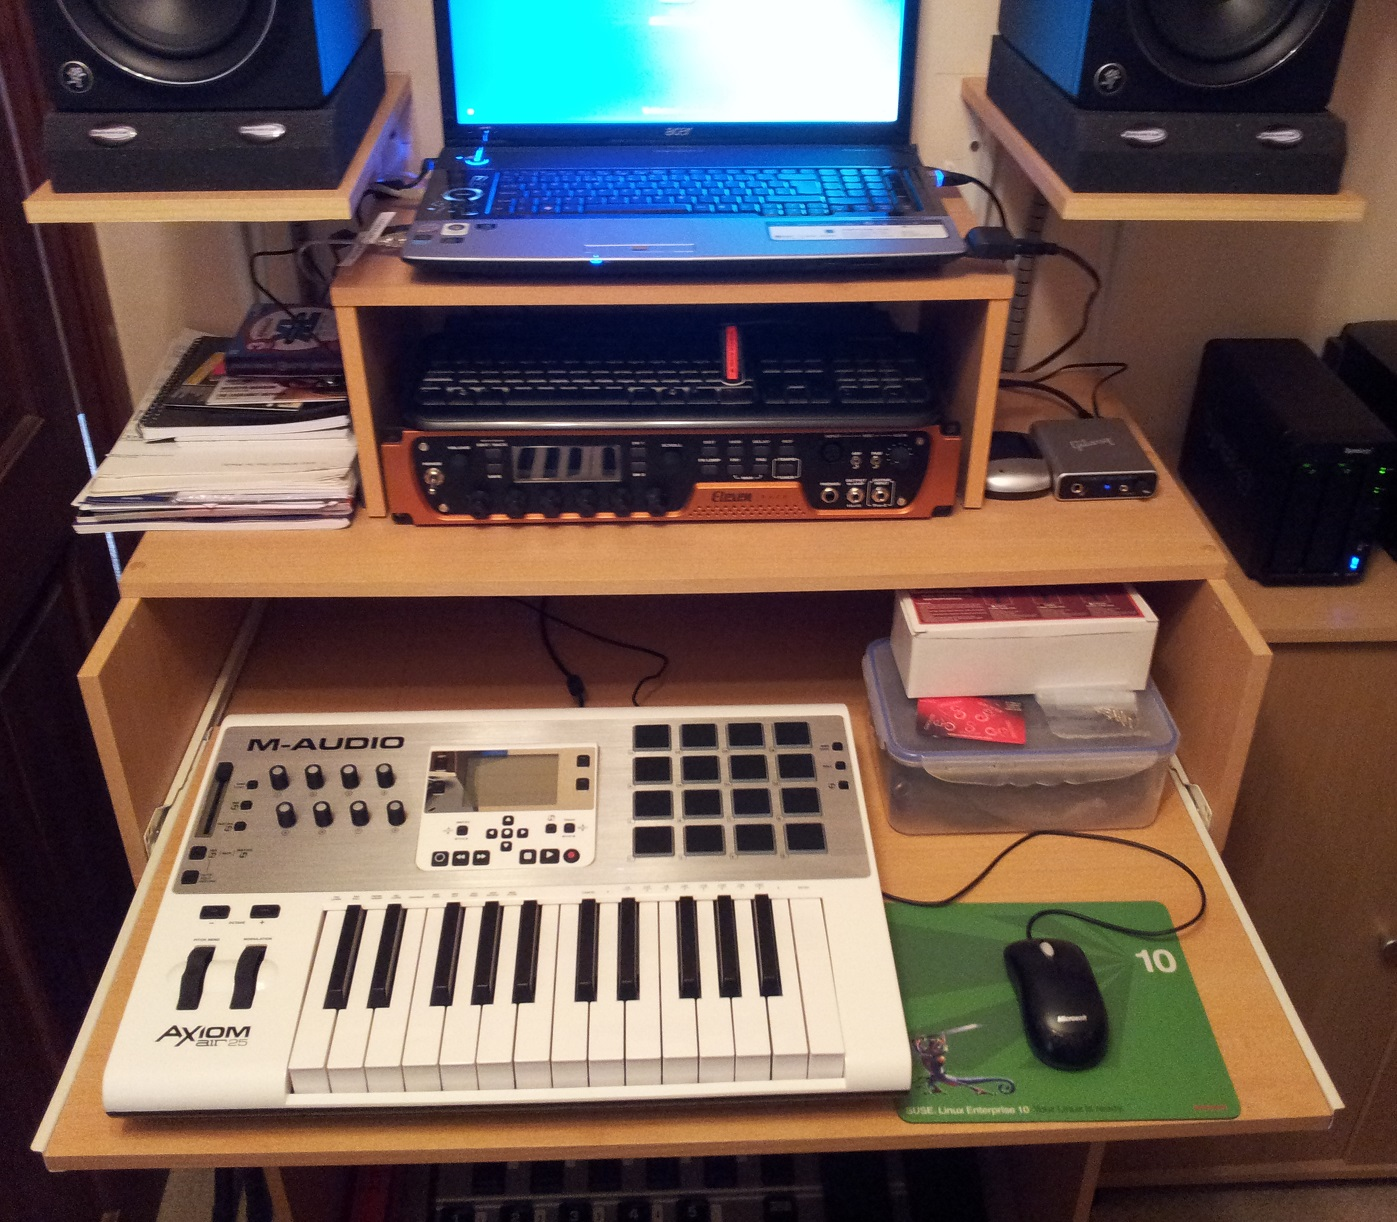 Guitars, Music Production, Home Studio, and Technology ...